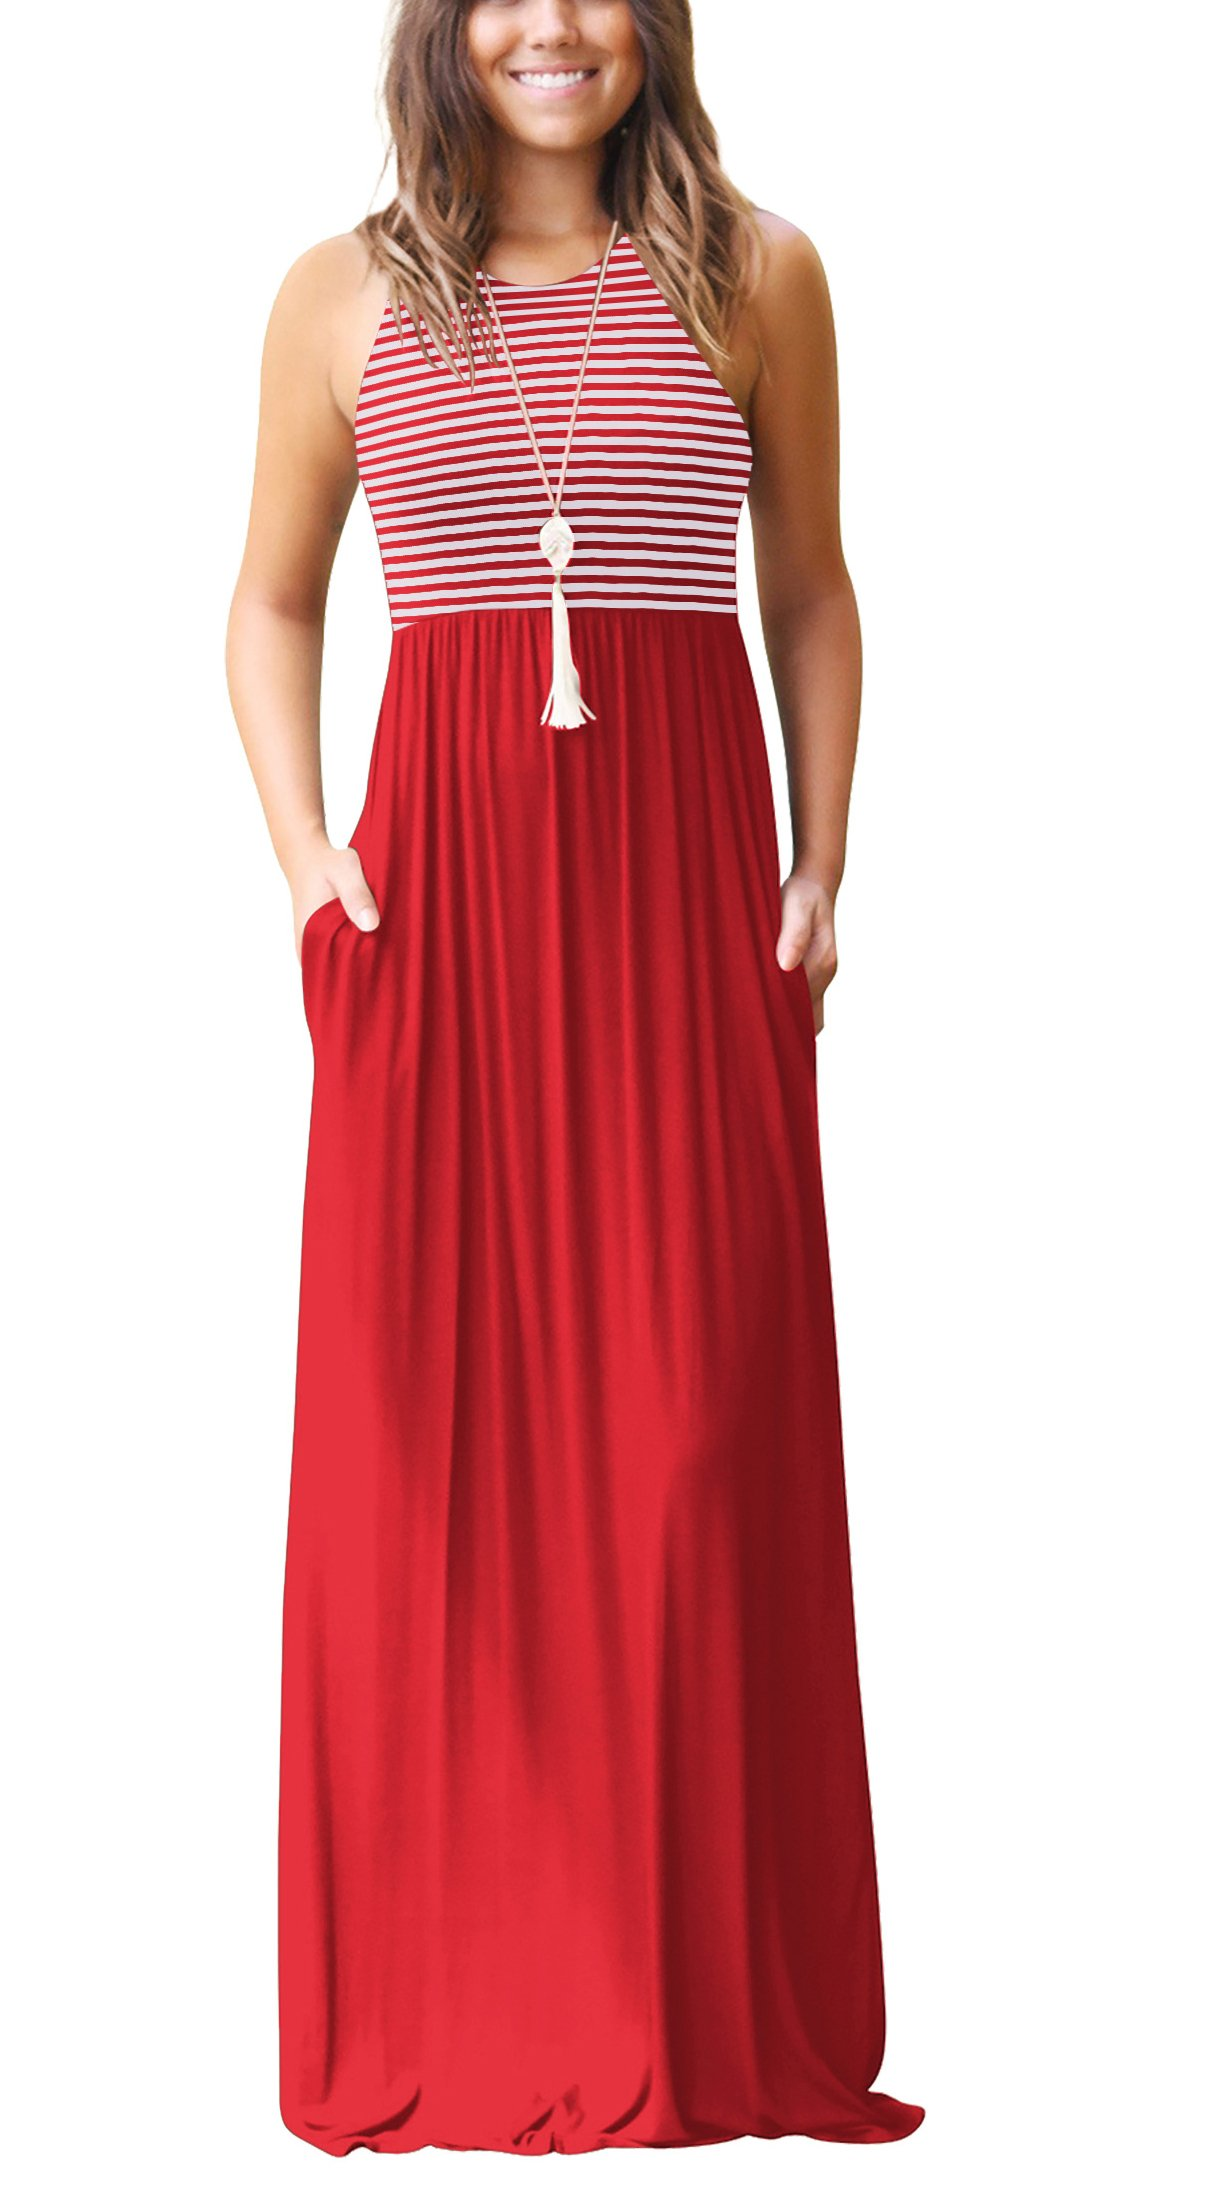 Haogo Womens Summer Round Neck Sleeveless Striped Long Maxi Dress with Pockets Red X-Large